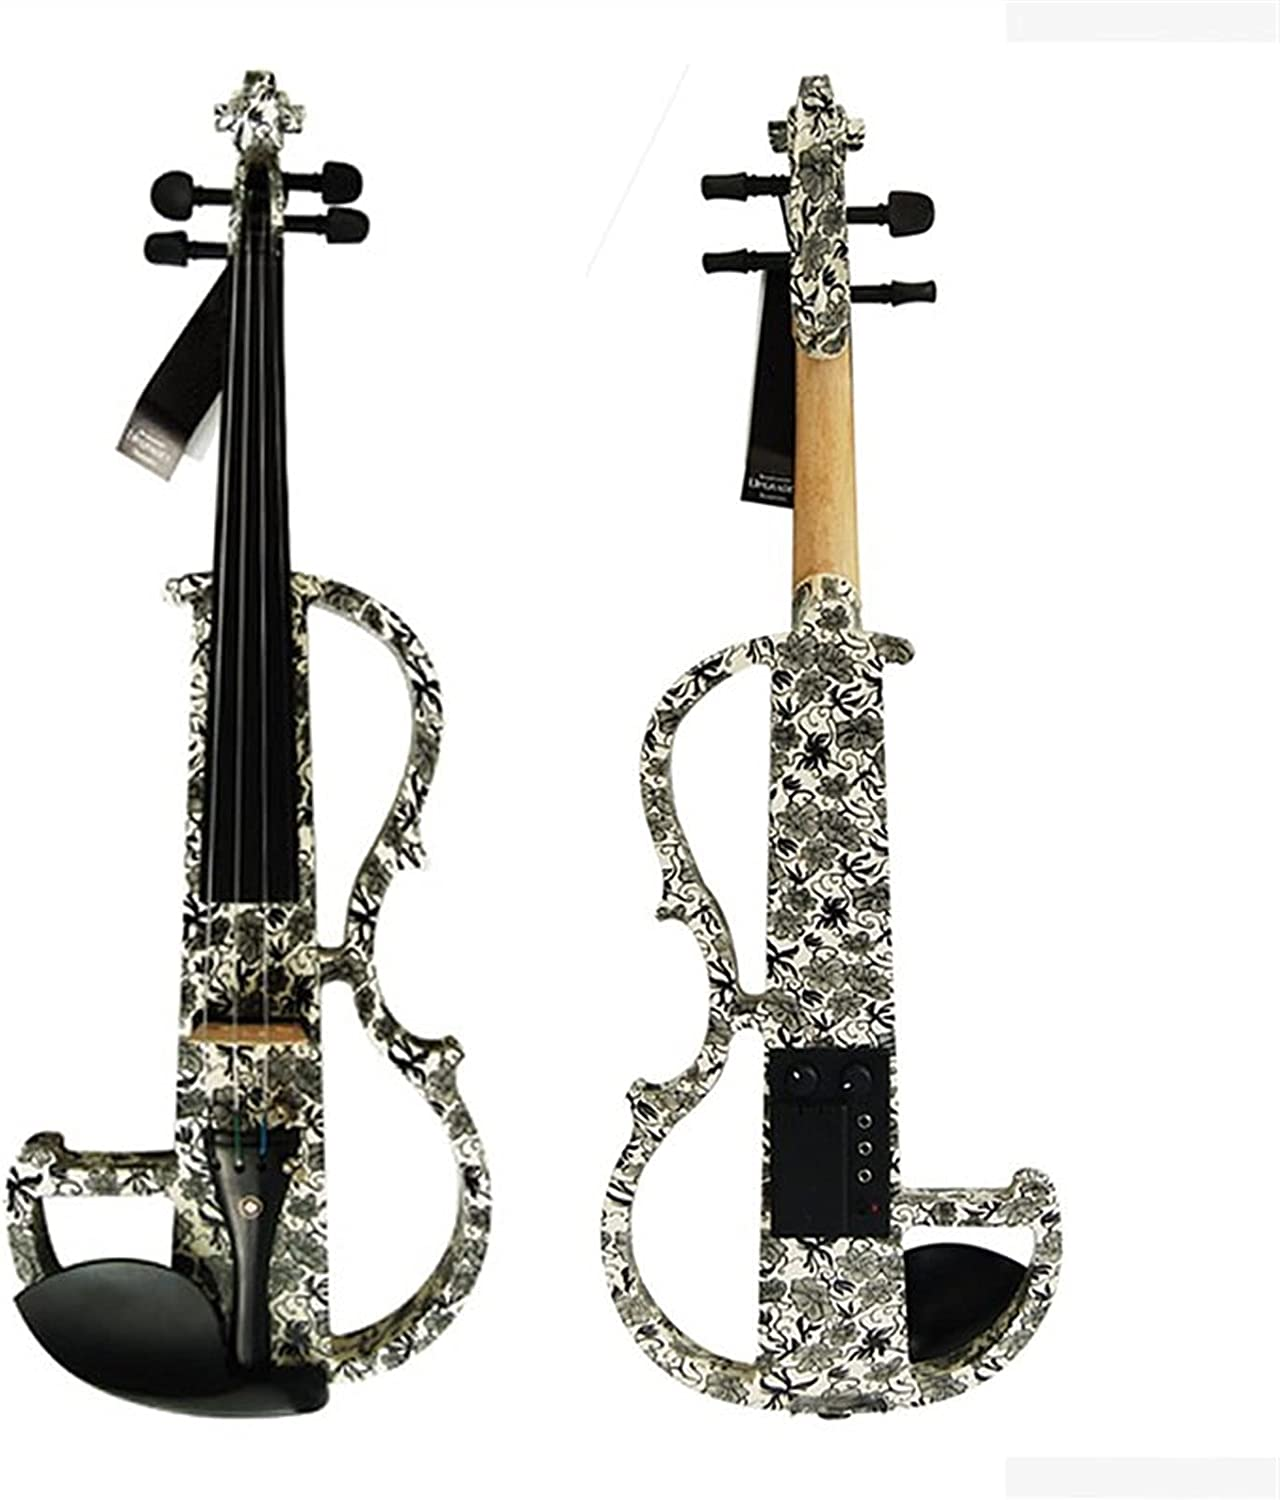 Violin Model Advanced Electric Super beauty product restock quality top Art Wo Black Solid White Max 74% OFF